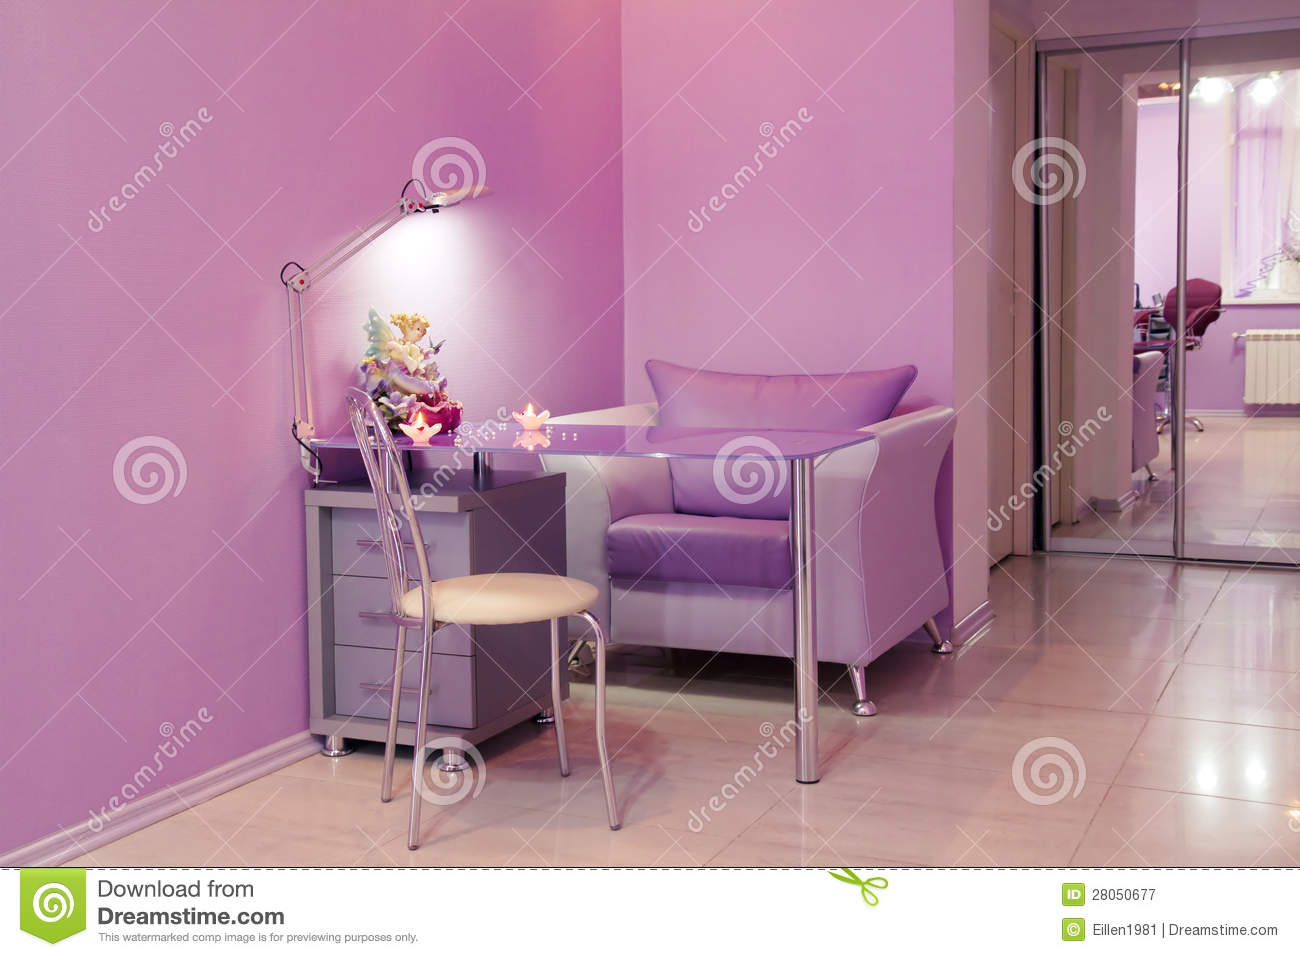 Manicure Room In A Modern Beauty Salon Stock Image Image